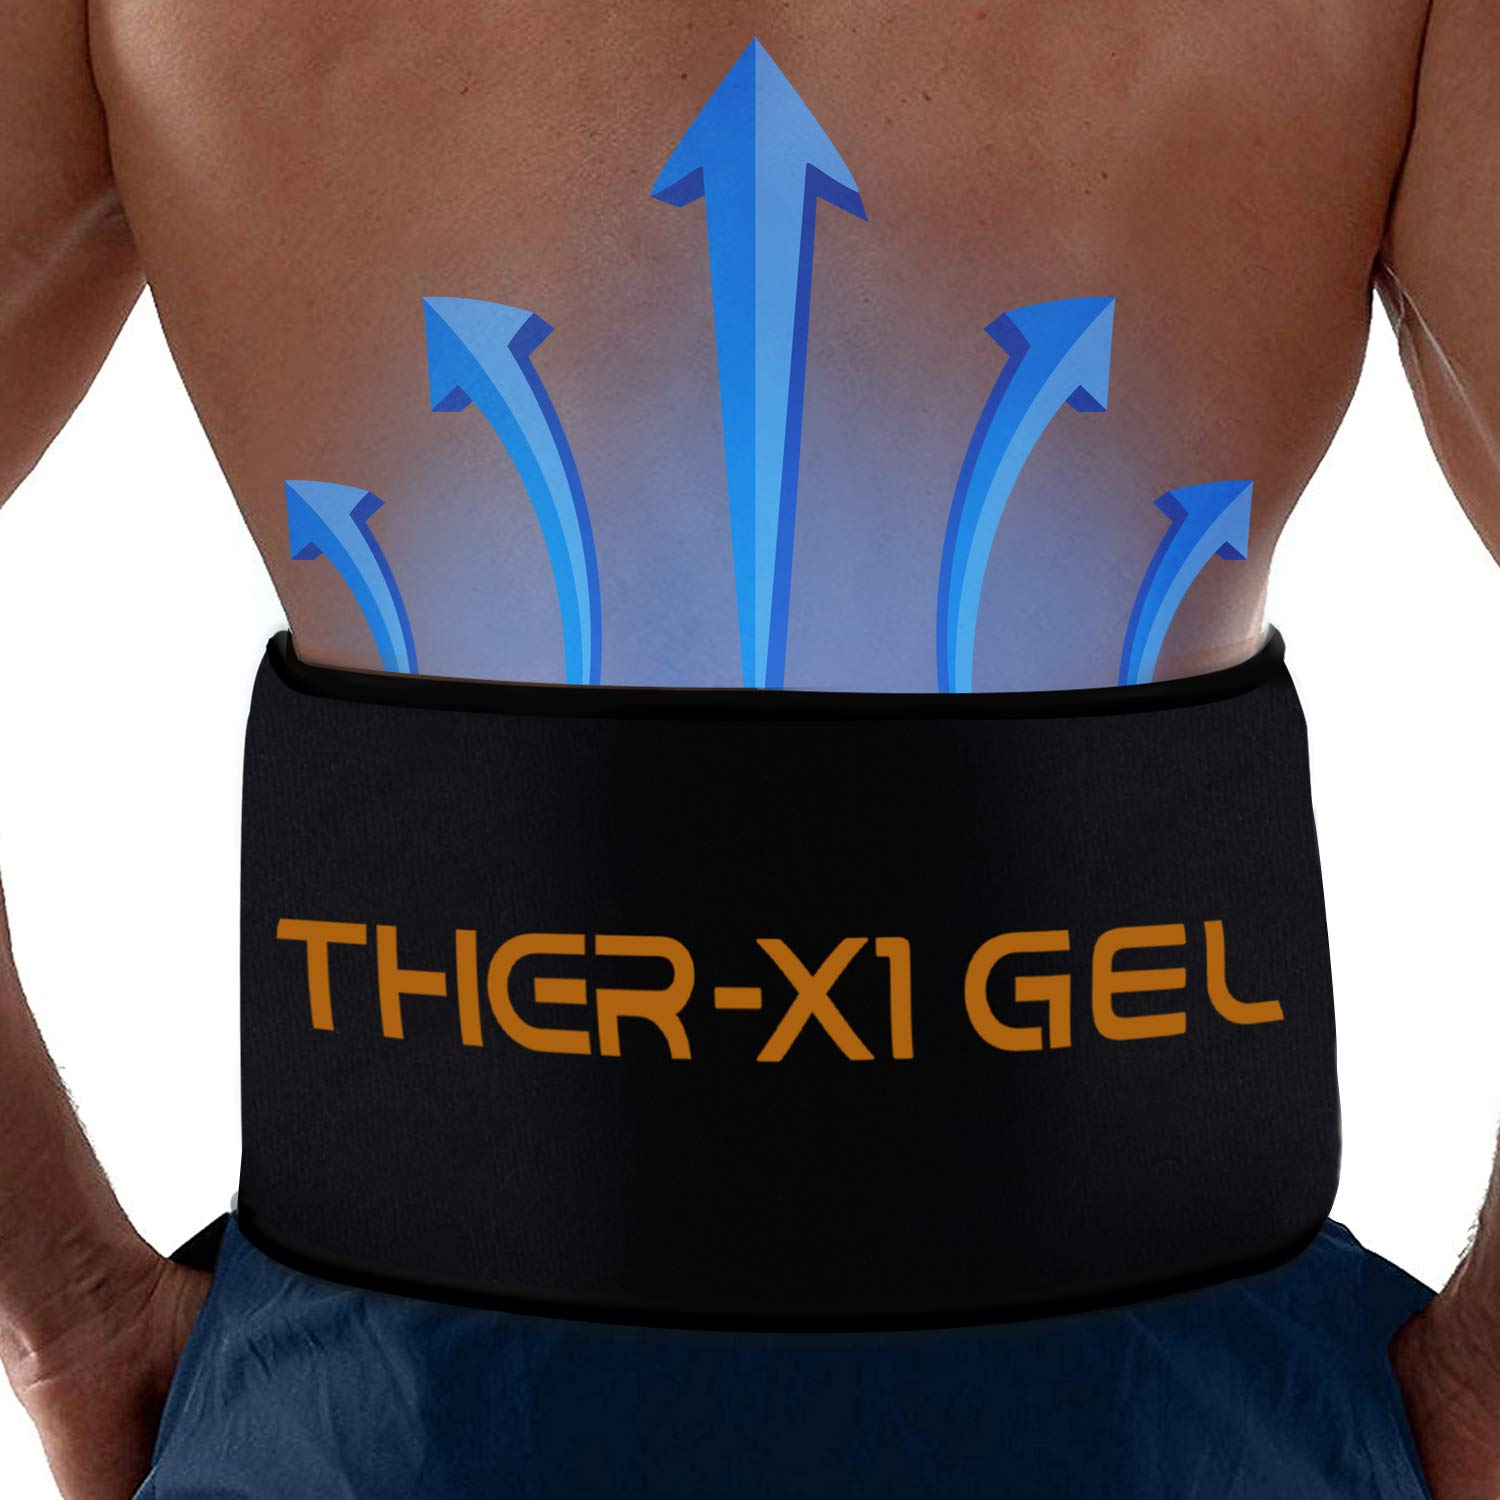 Back Pain Cold Reusable Ice Pack Belt Therapy For Lower Lumbar , Sciatic Nerve Pain Relief Degenerative Disc Disease Coccyx Tailbone Pain Reusable Gel Flexible Medical Grade